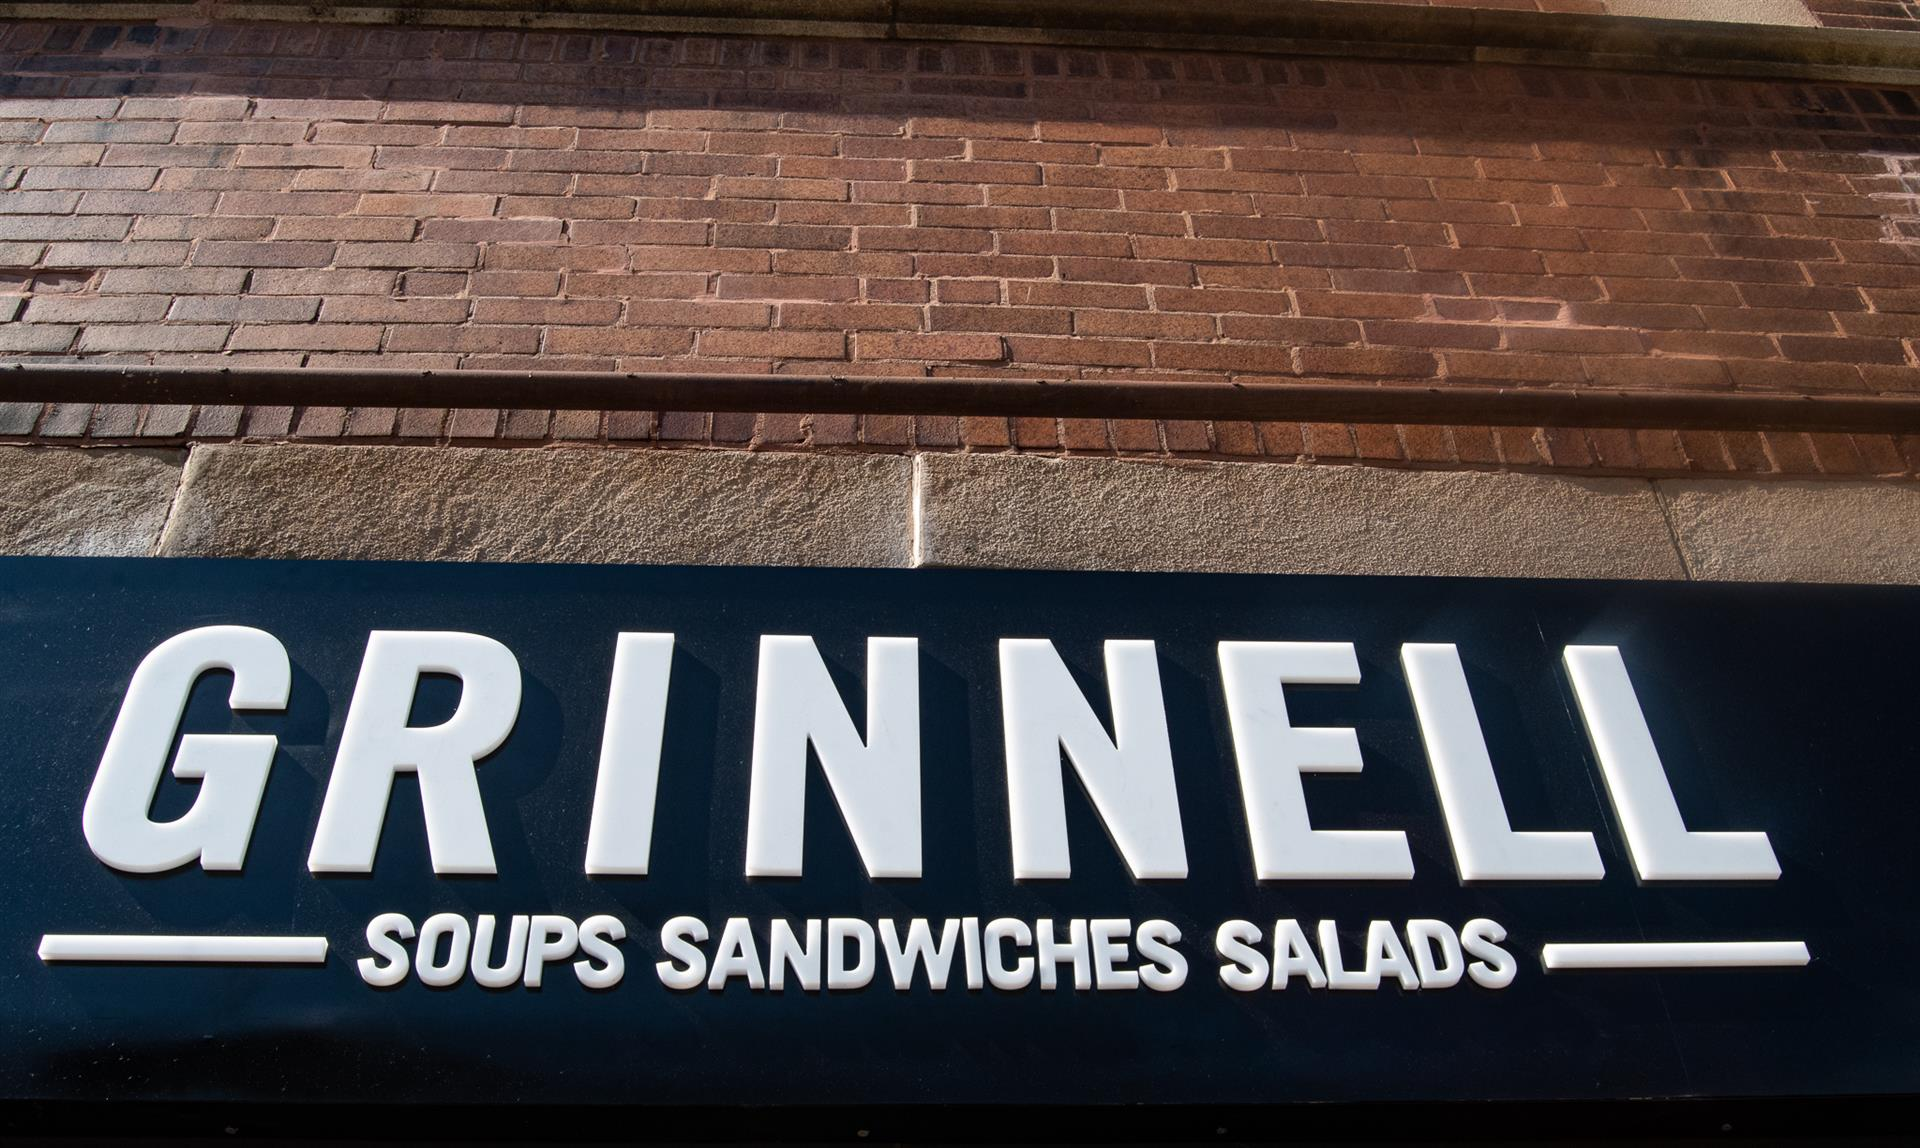 grinnell soups salads sandwiches sign